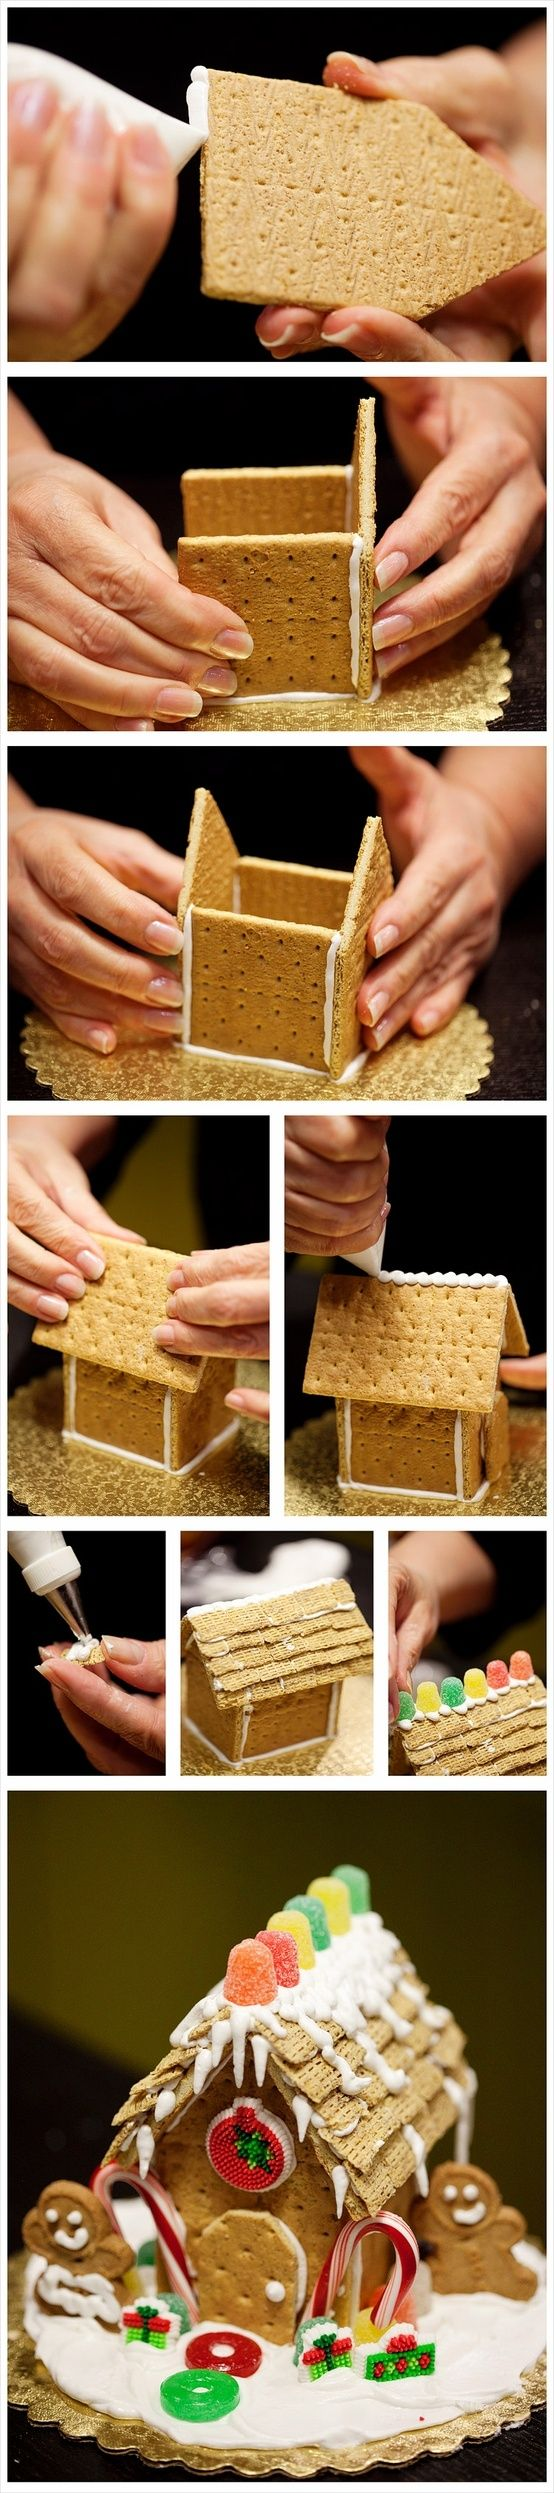 Make a gingerbread house out of graham crackers instead of store bought gingerbread